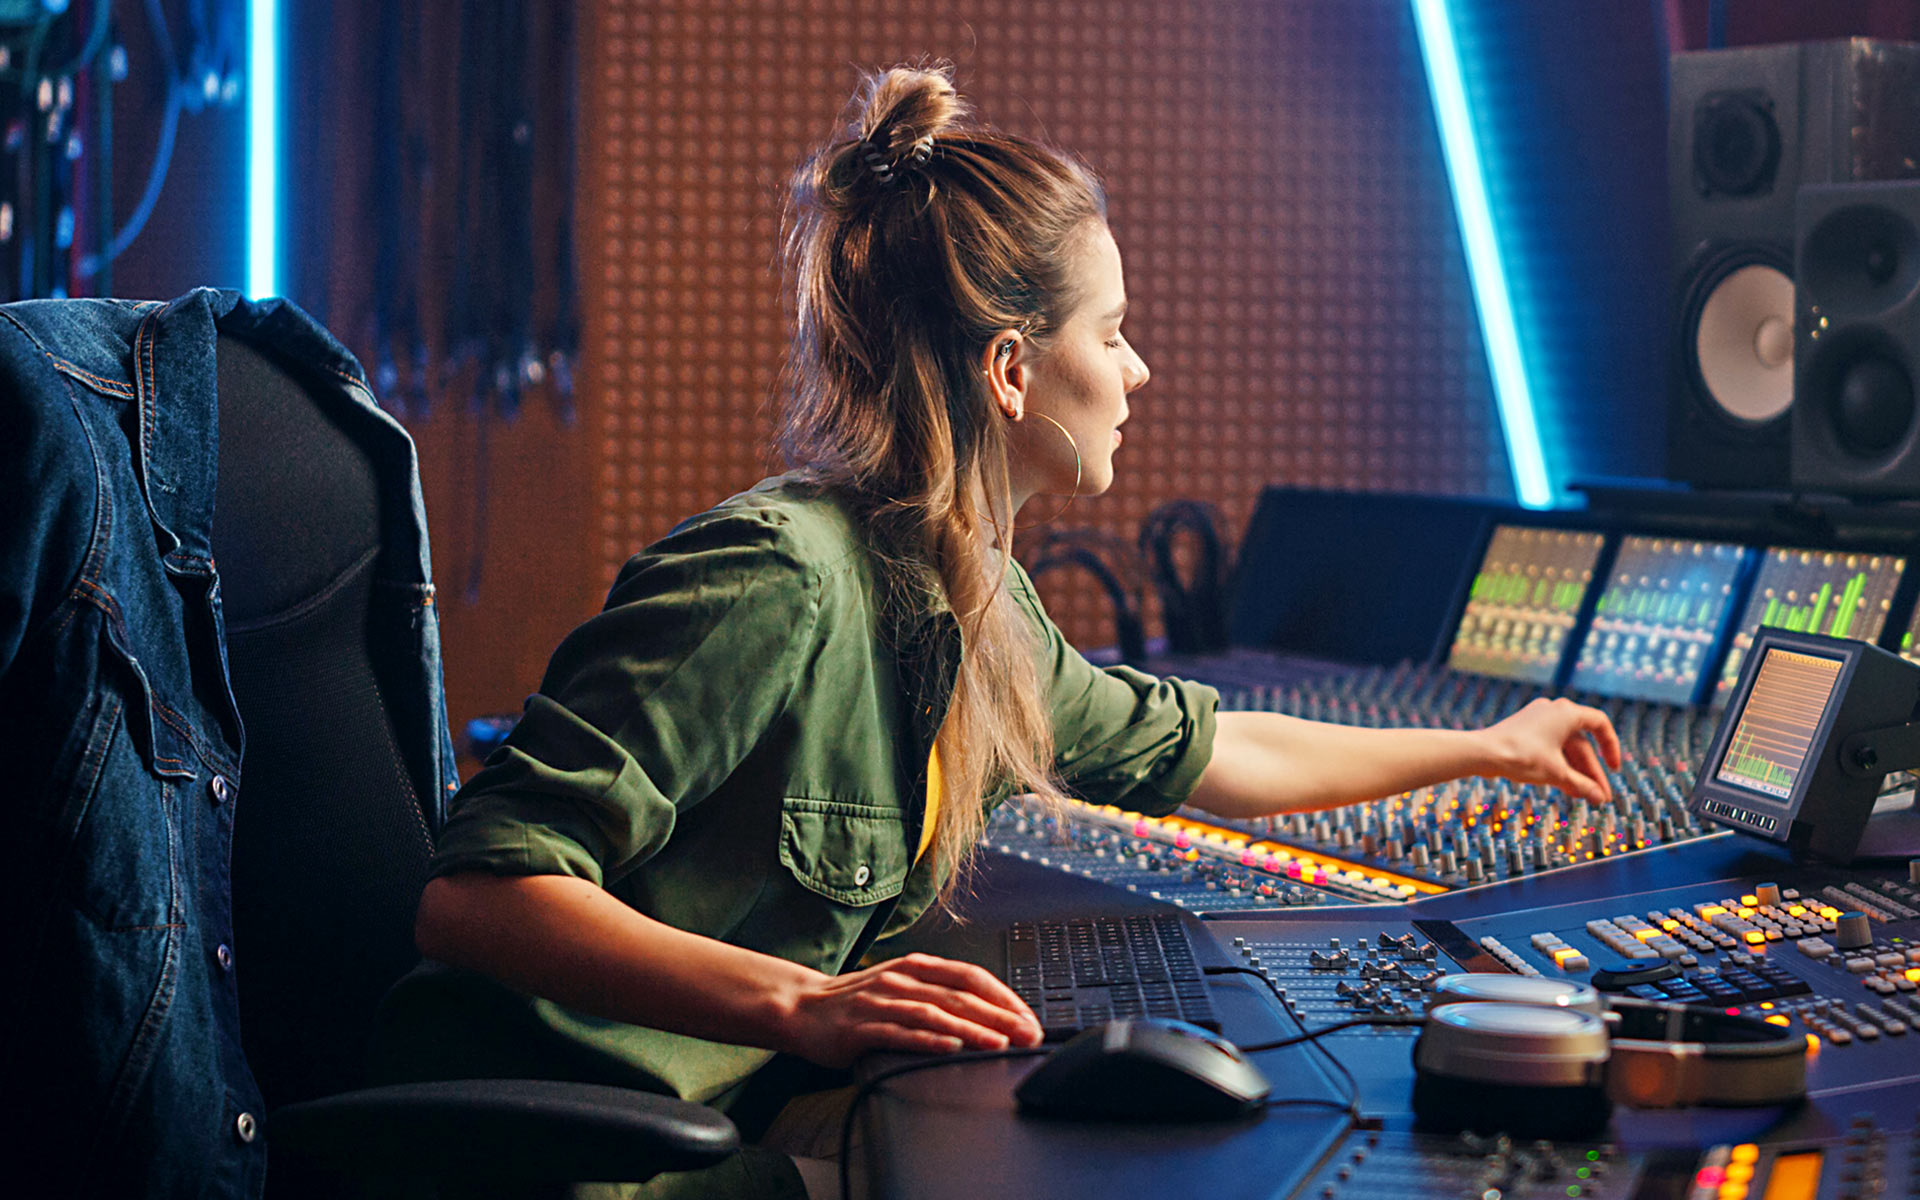 Music Production: What does a Music Producer do?